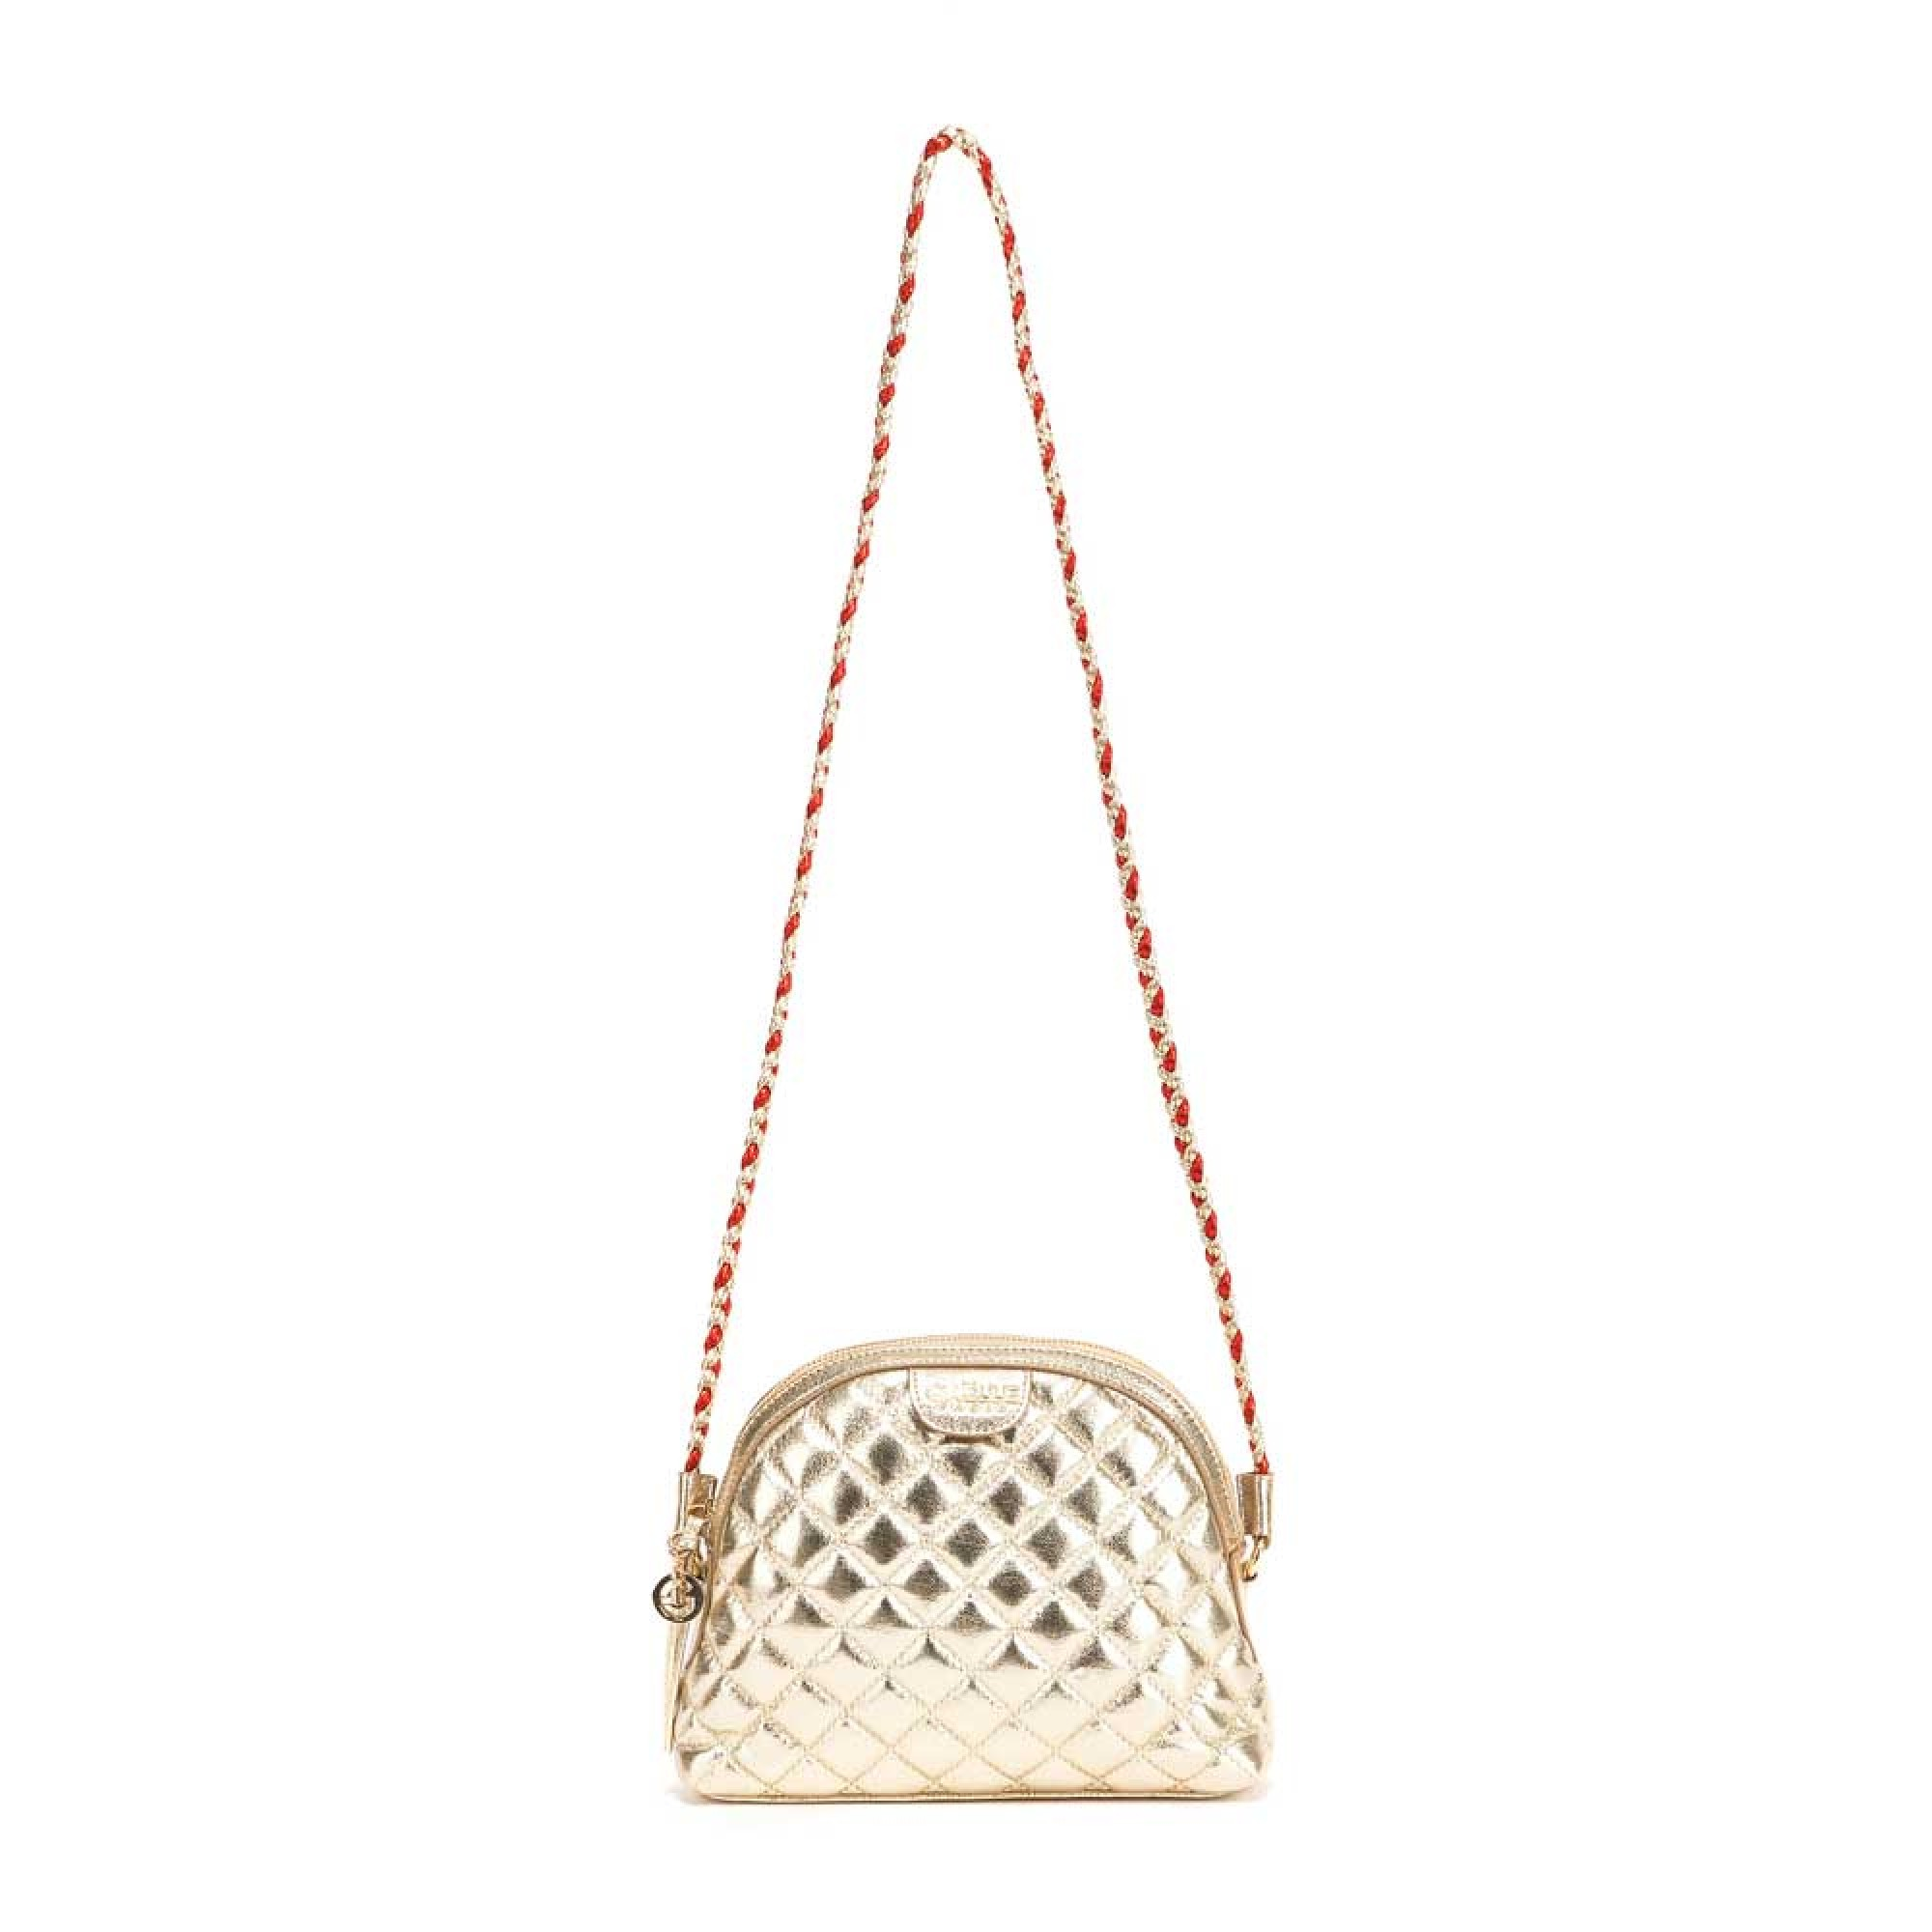 SHOULDER BAG - GBDA1481 - GAELLE PARIS